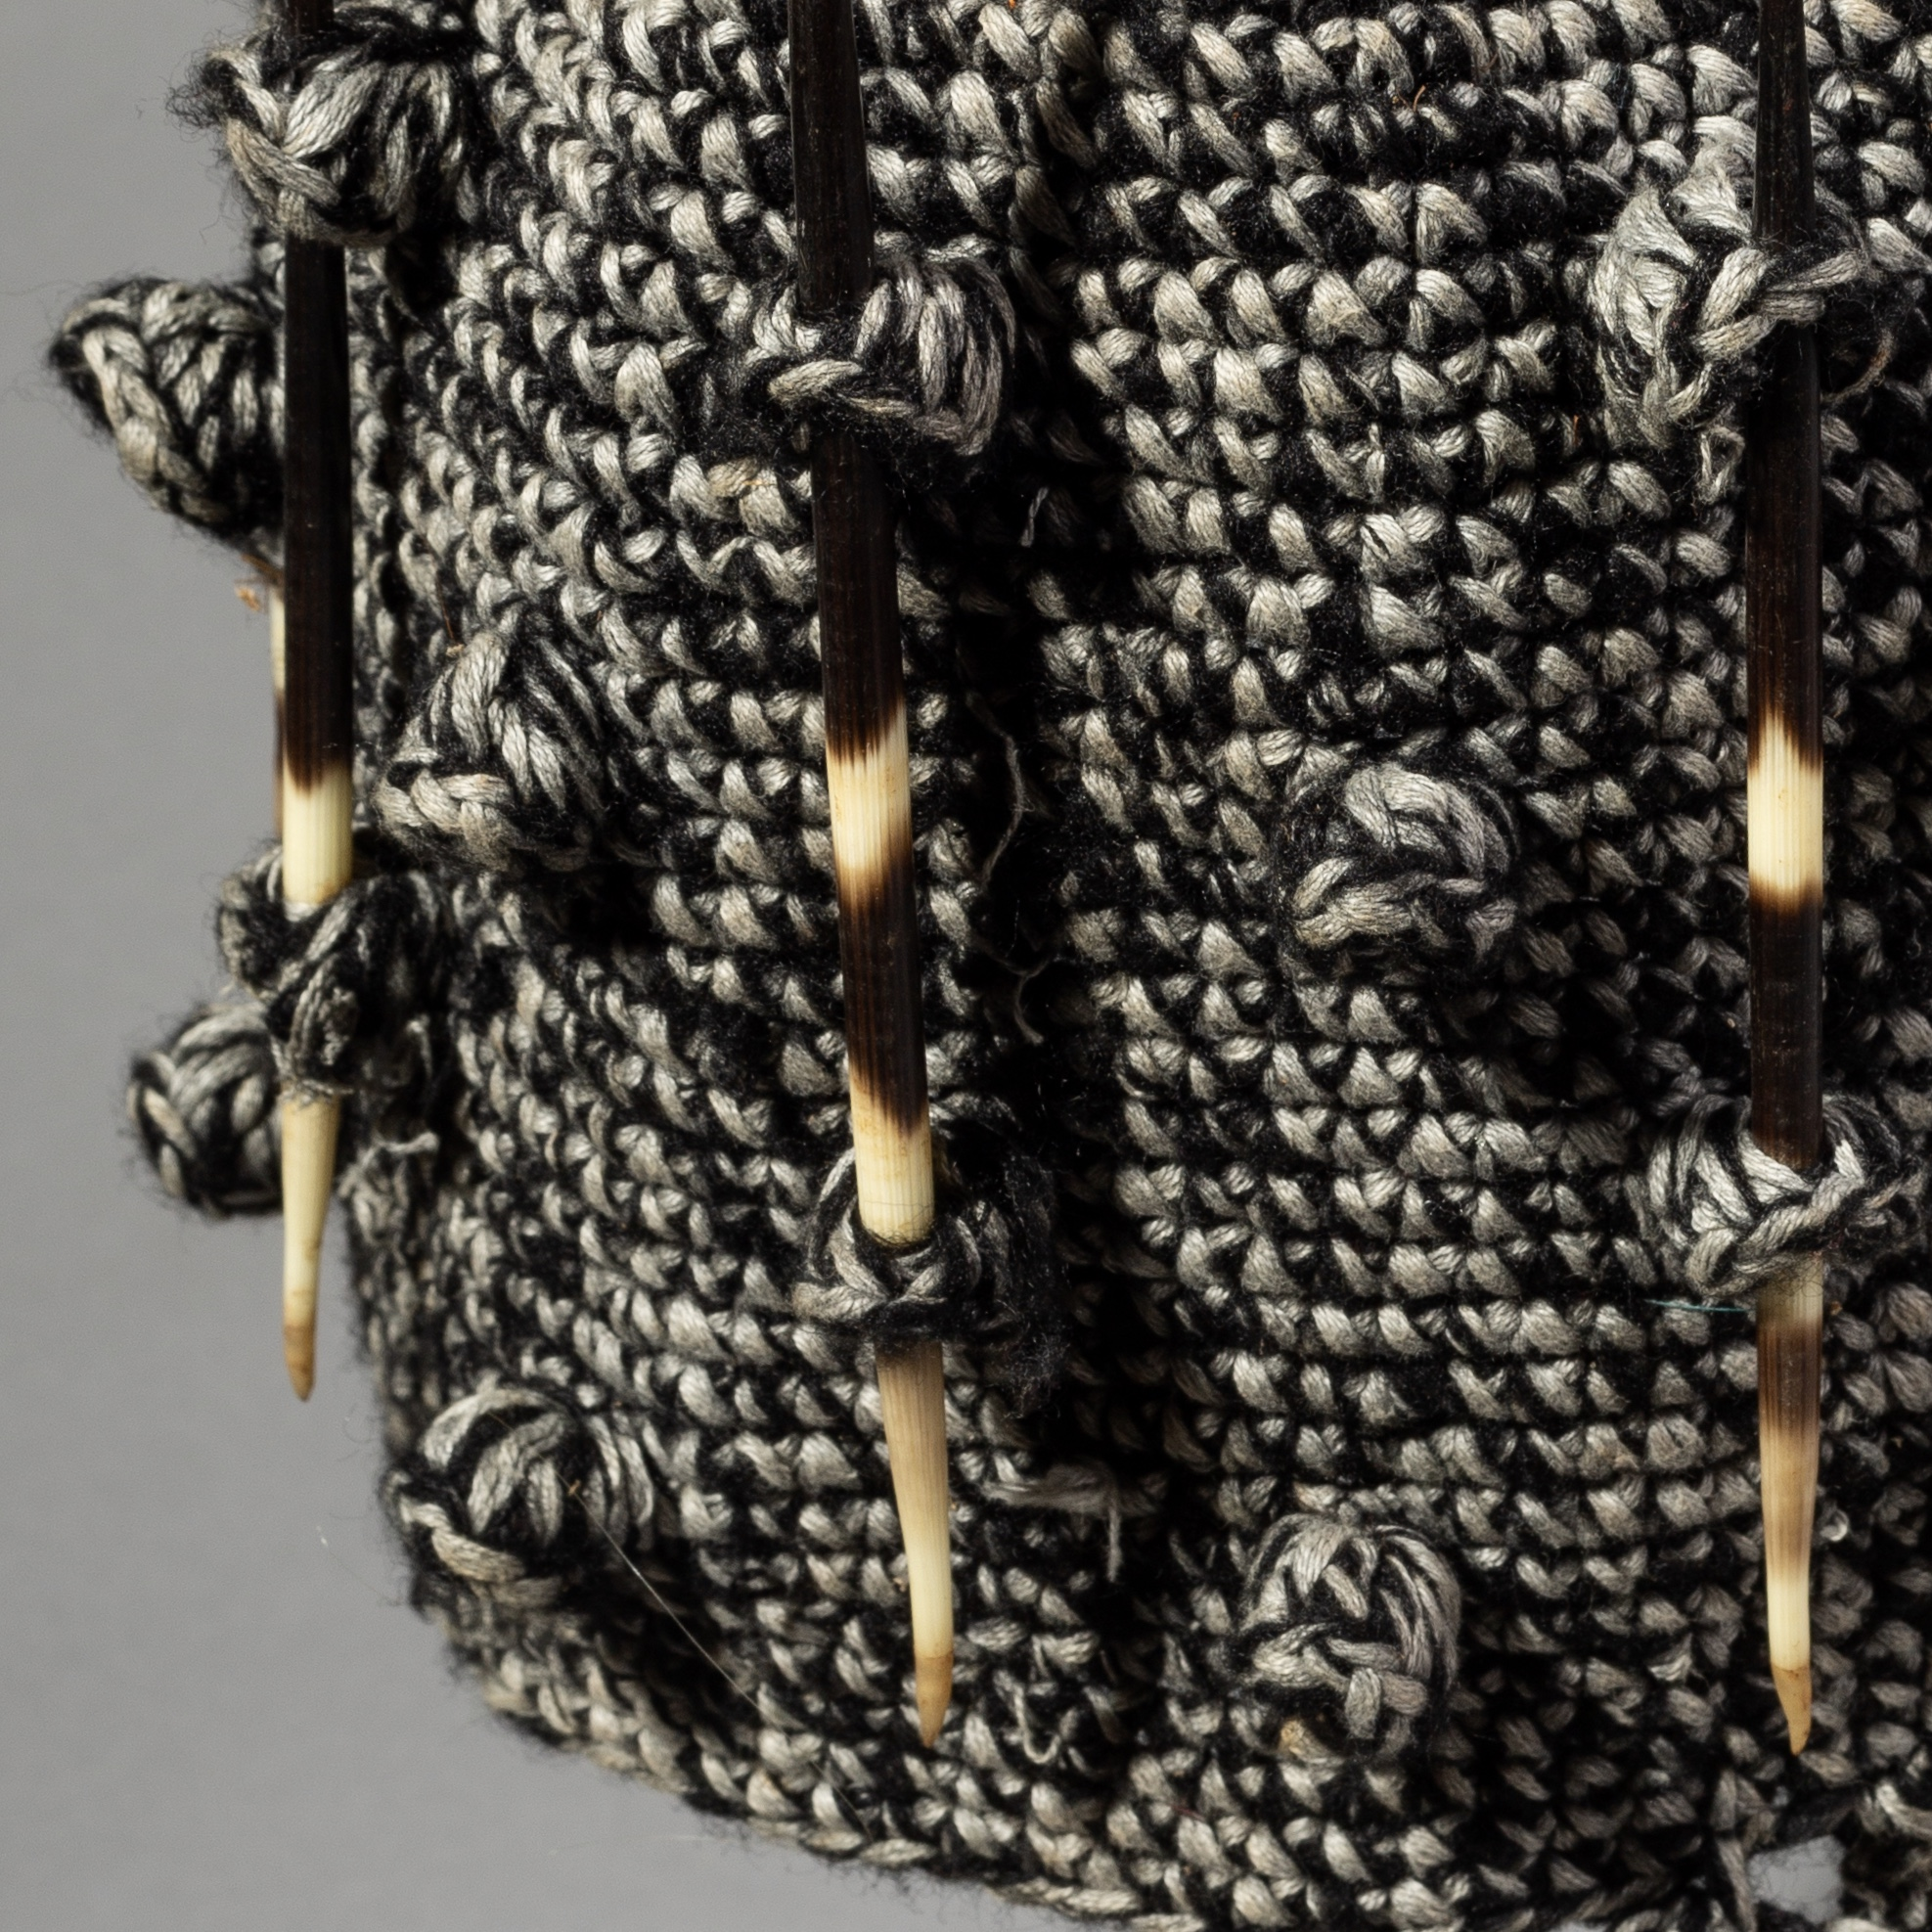 SD A BAMILEKE BAUBLE HAT WITH PORCUPINE QUILS, CAMEROON ( No 1903 )